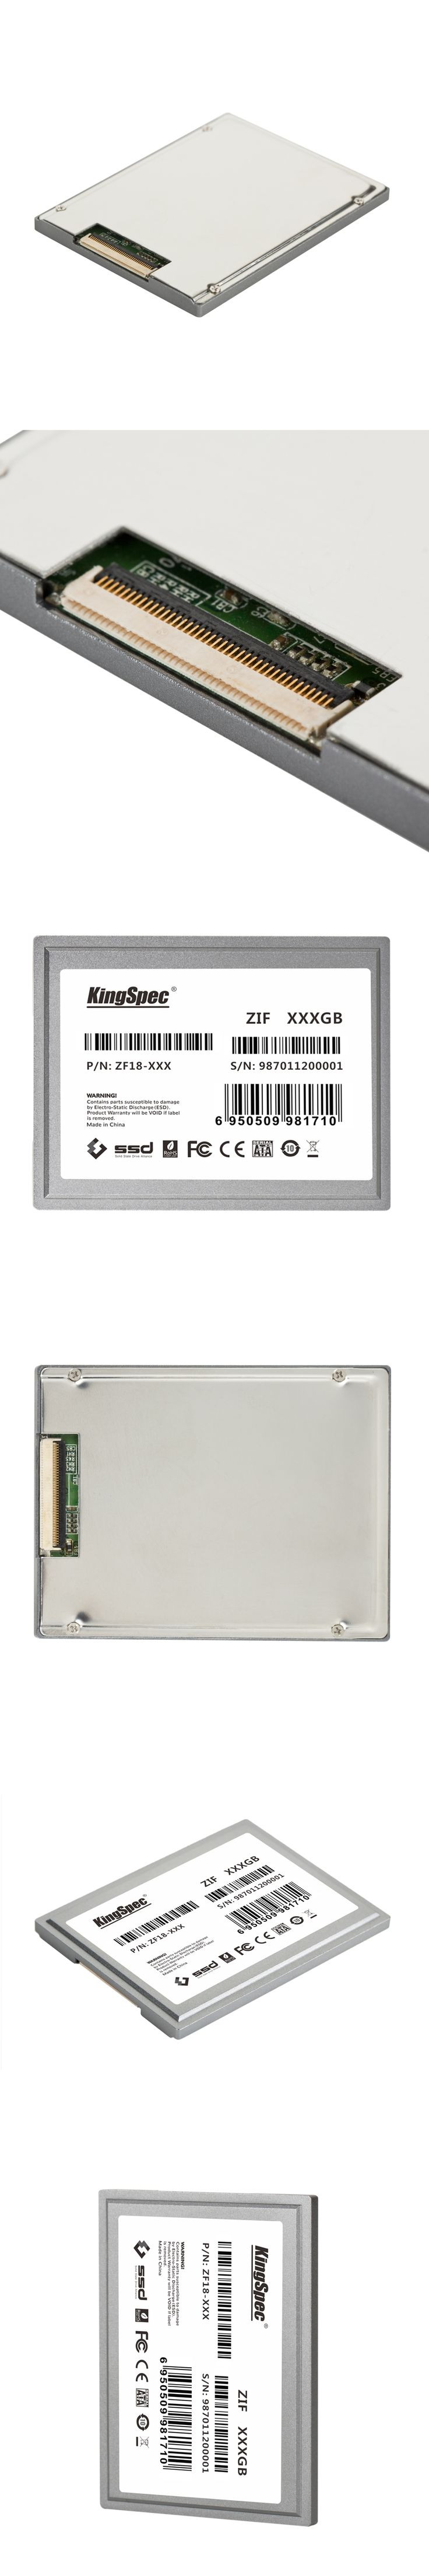 KingSpec ZF18-128 1.8 inch ZIF CE Interface IDE SSD Hard Drive Disk 128GB Solid State Drive IDE Flash Drive For Ultrabook